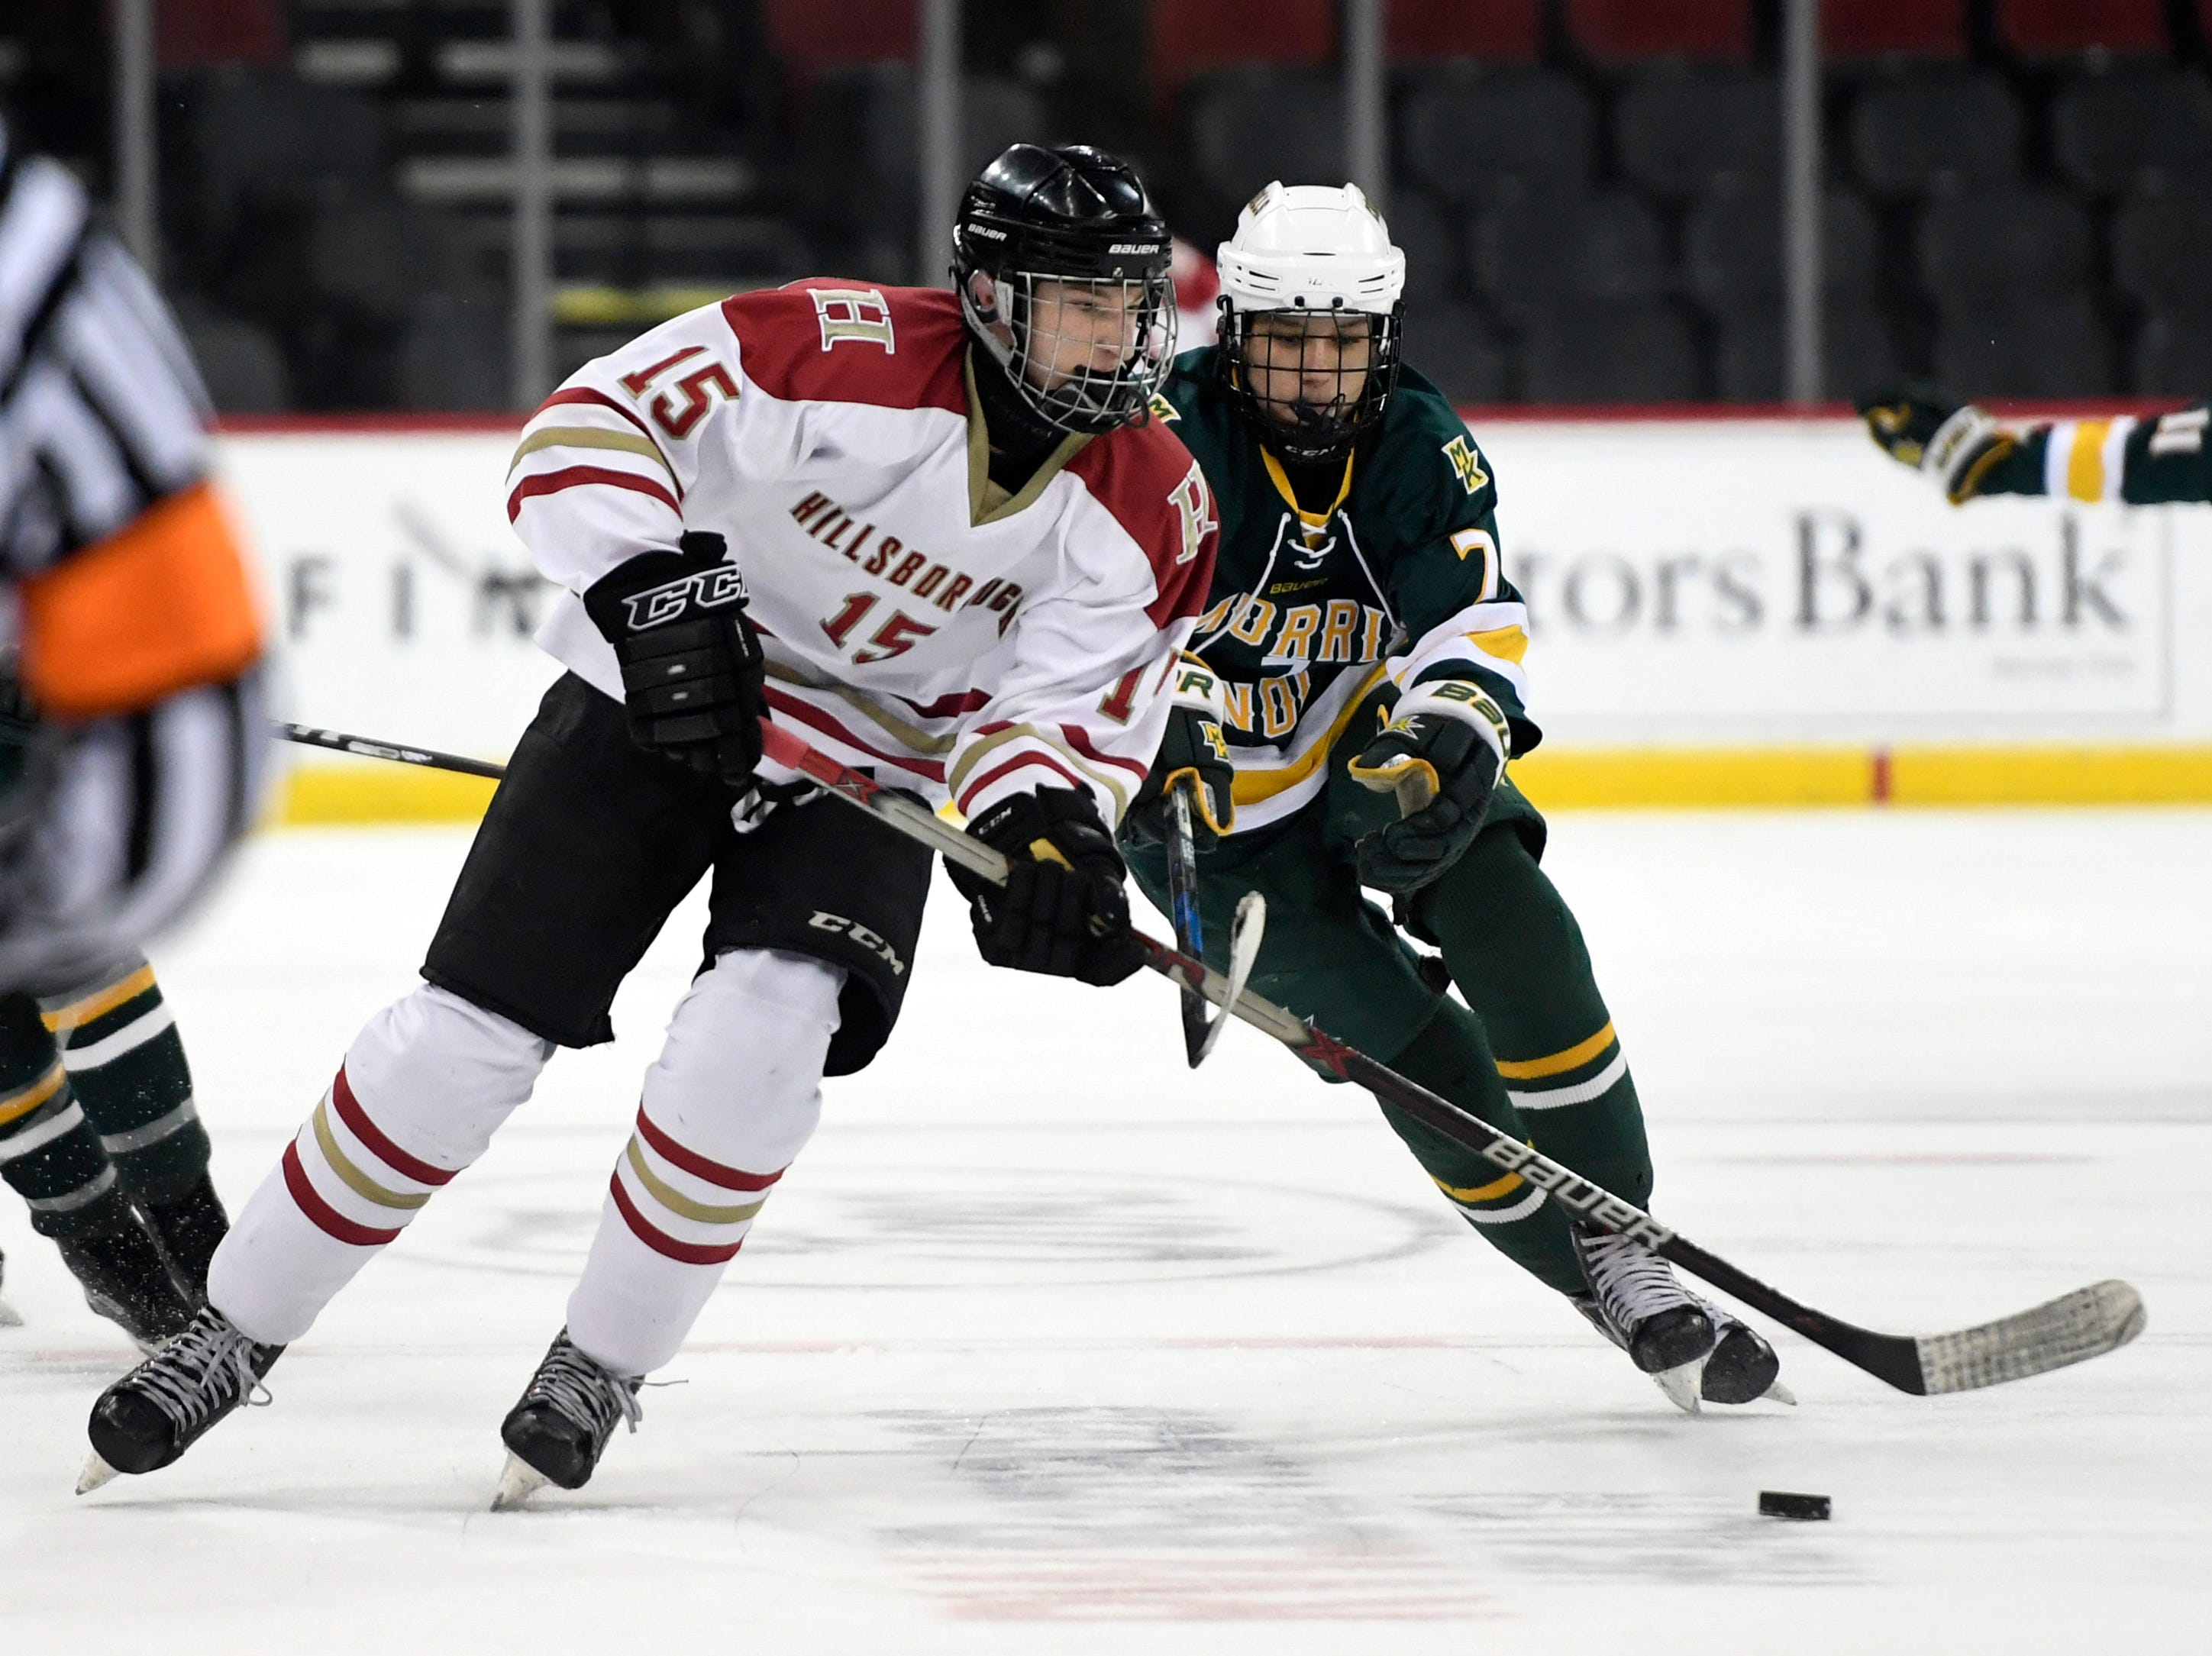 Hillsborough's Lleyton Soares (15) plays against Morris Knolls/Hills in the Public A ice hockey final at the Prudential Center on Monday, March 4, 2019, in Newark.